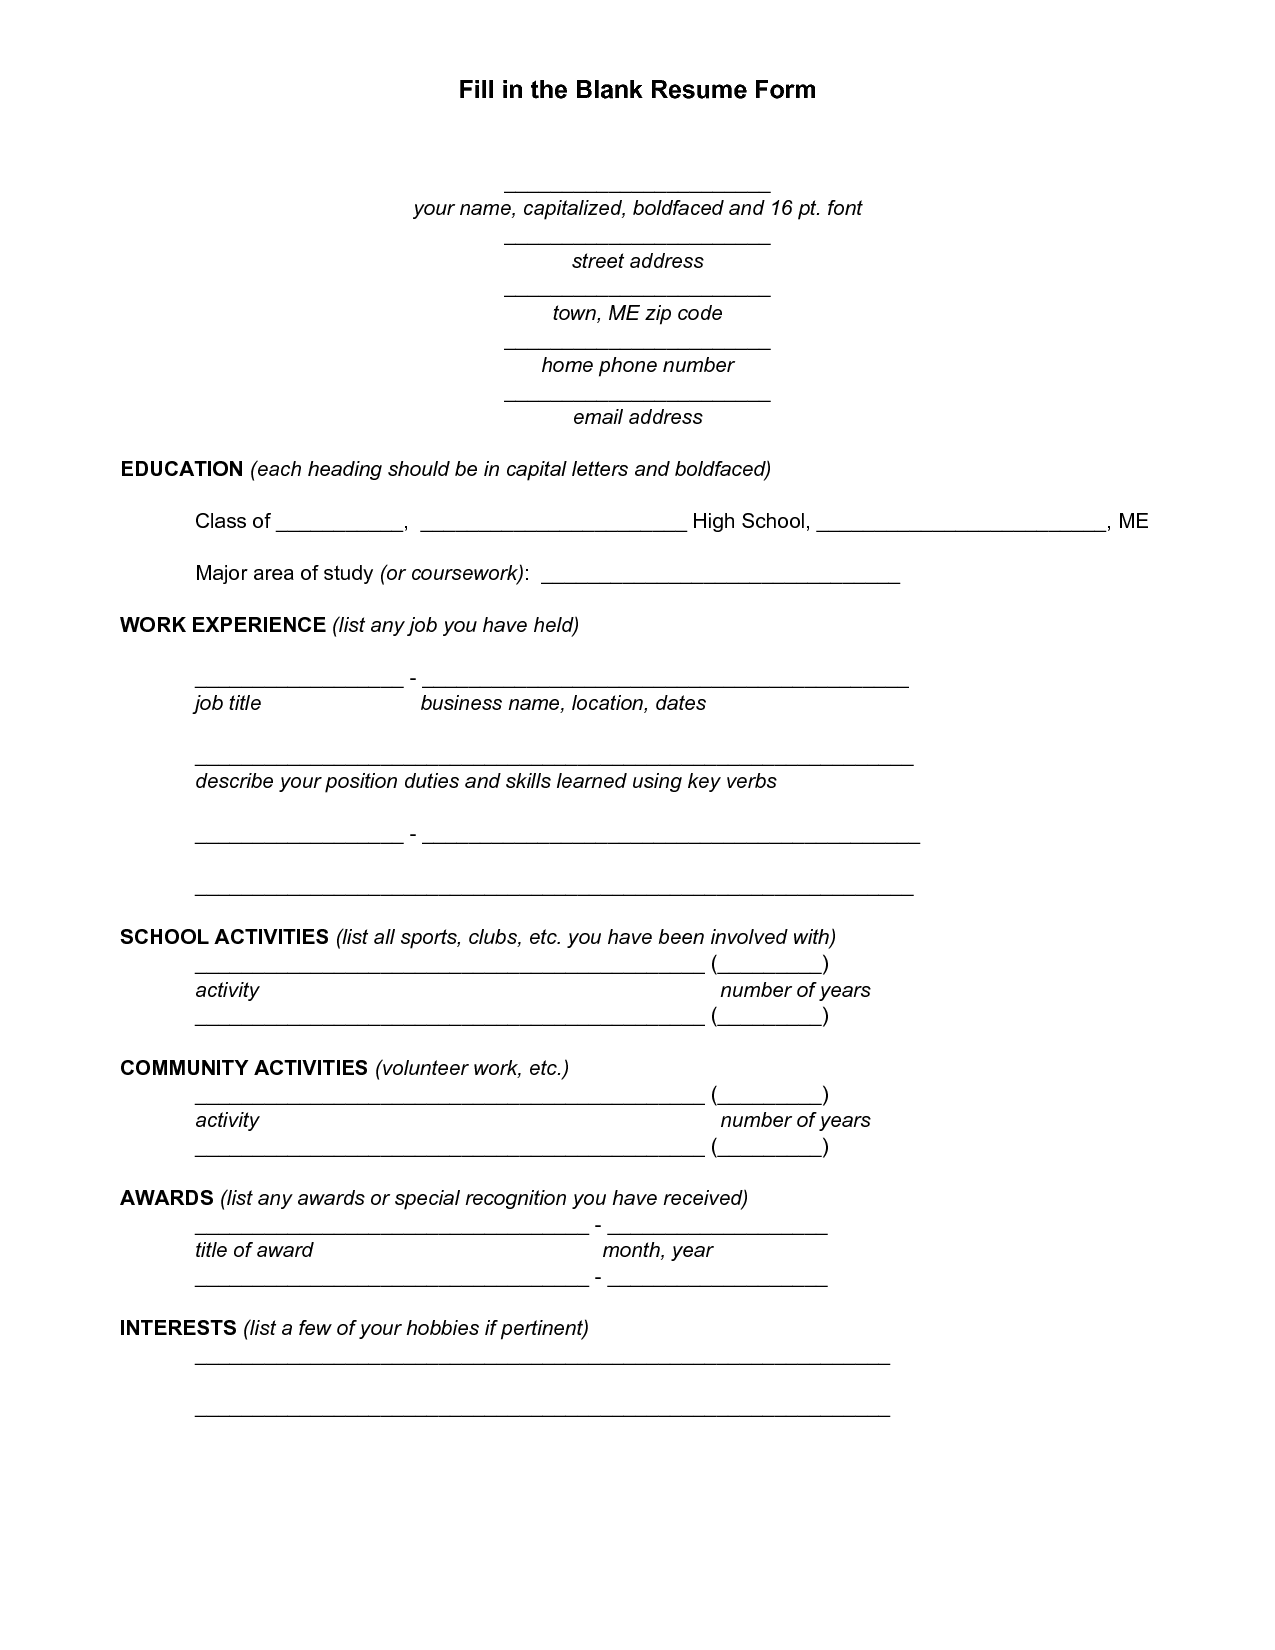 Resume Fill In Template